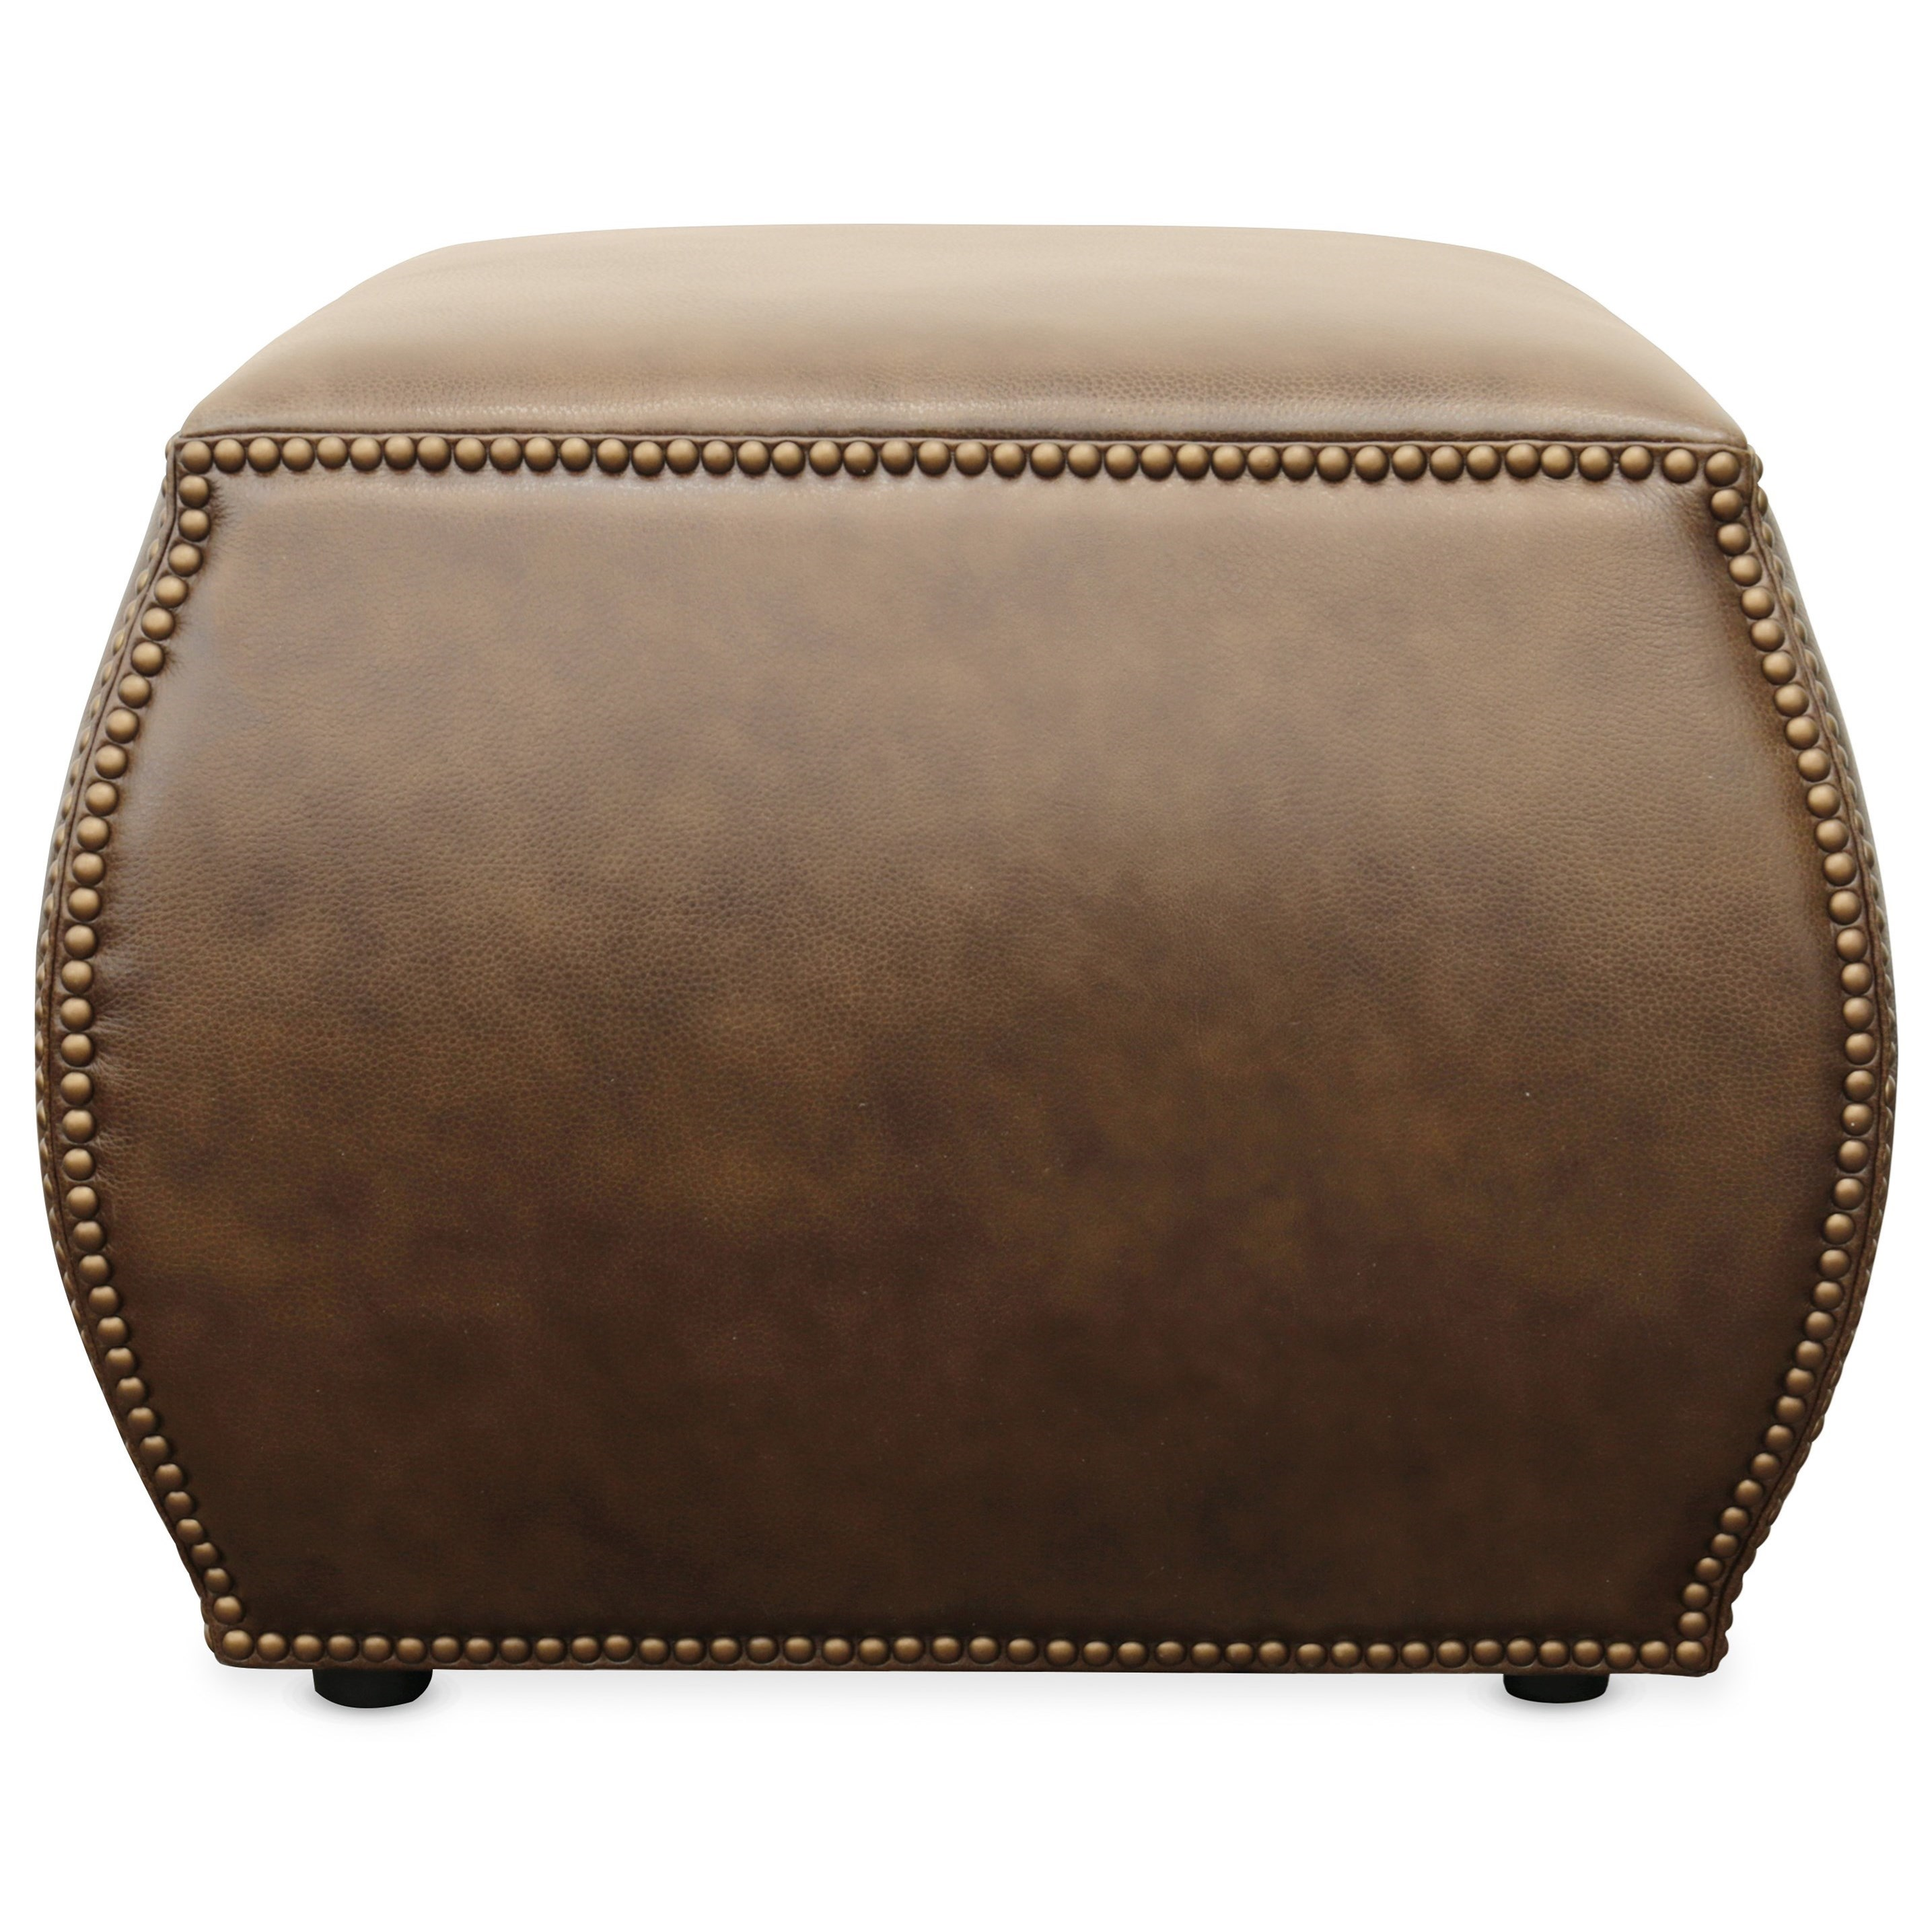 Cocktail Ottomans Cordova Leather Ottoman by Hooker Furniture at Stoney Creek Furniture